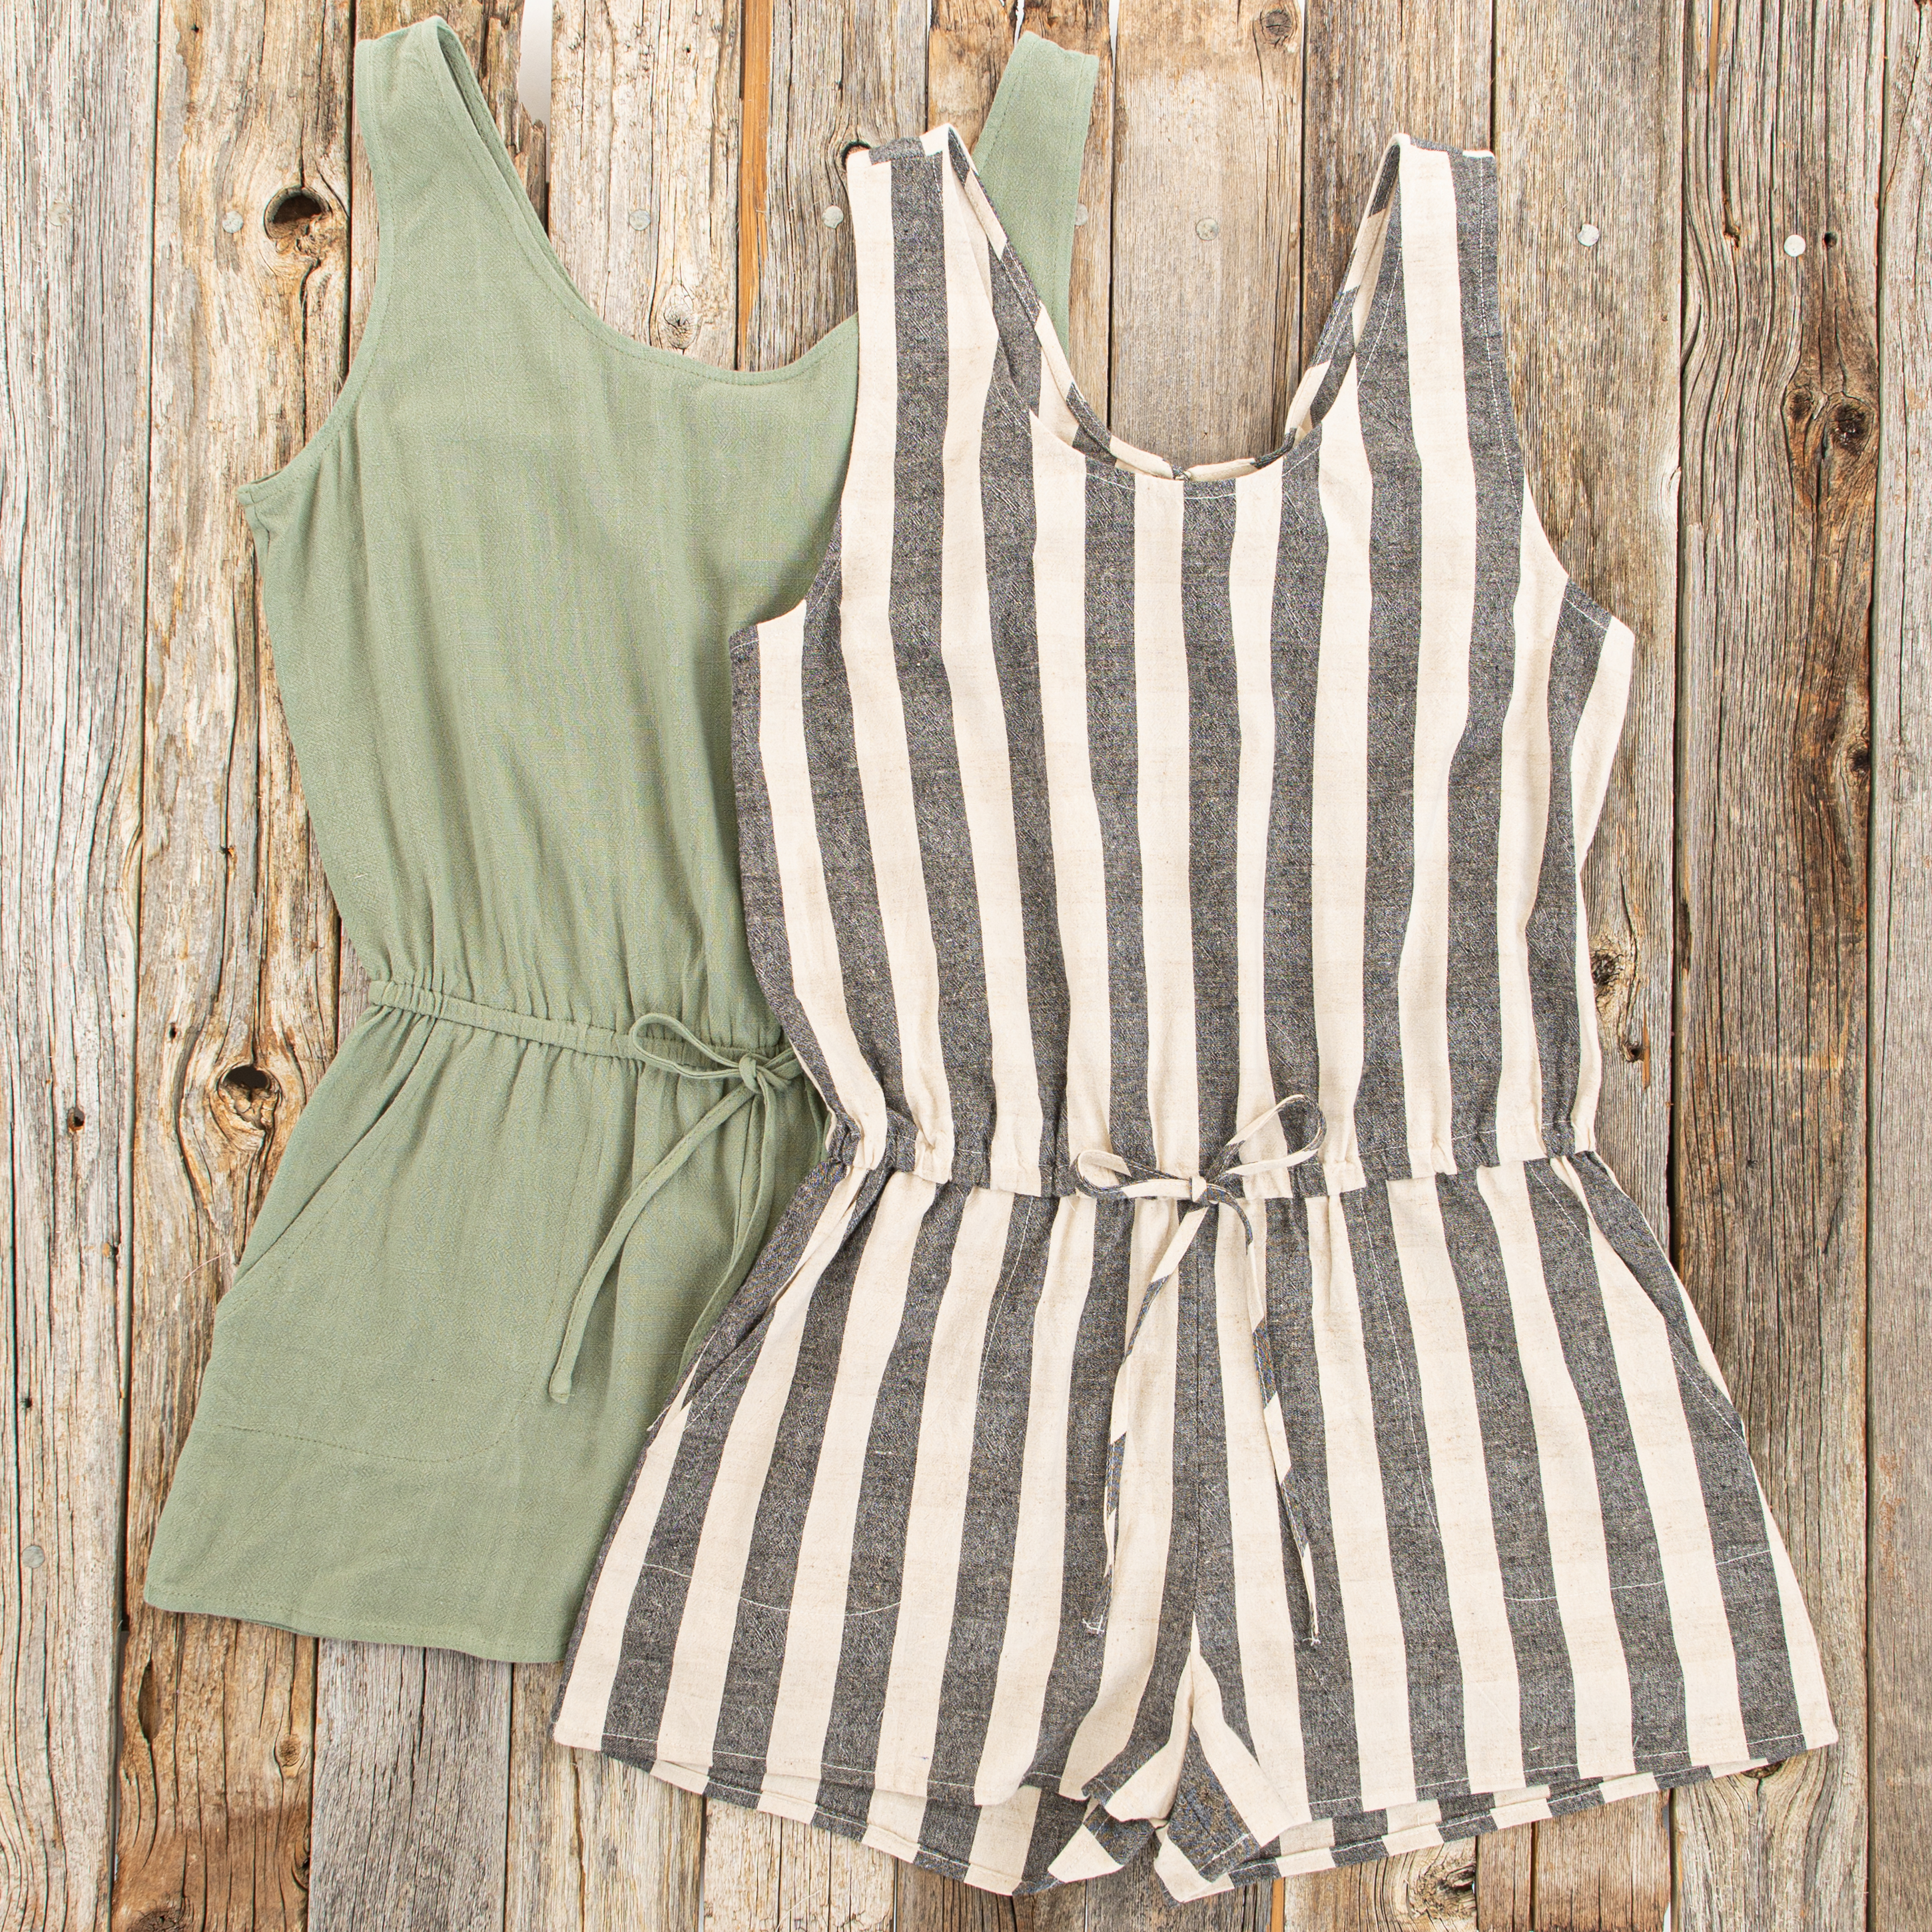 Sage Sleeveless Romper with Elastic Waist and Pockets